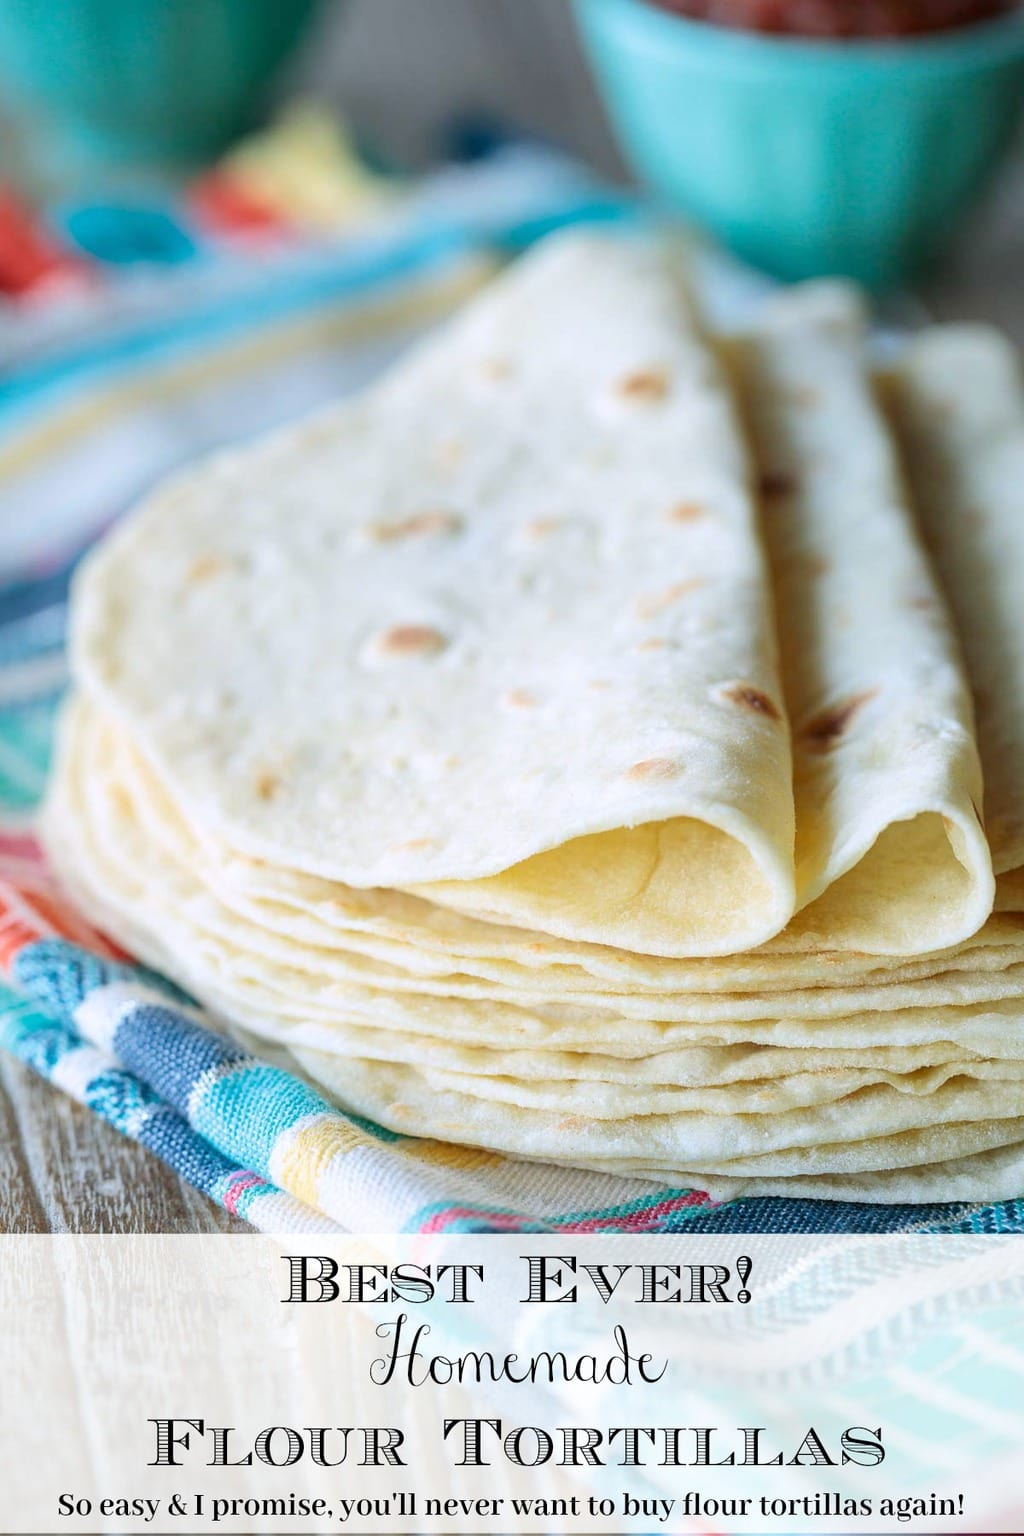 Best Ever Homemade Flour Tortillas, so easy, SO good! The name says it all! Check out over 500 5-star reviews!#bestflourtortillas #flourtortillas #easyflourtortillas #mexicanfood #mexicanrecipes #nomixerflourtortillas